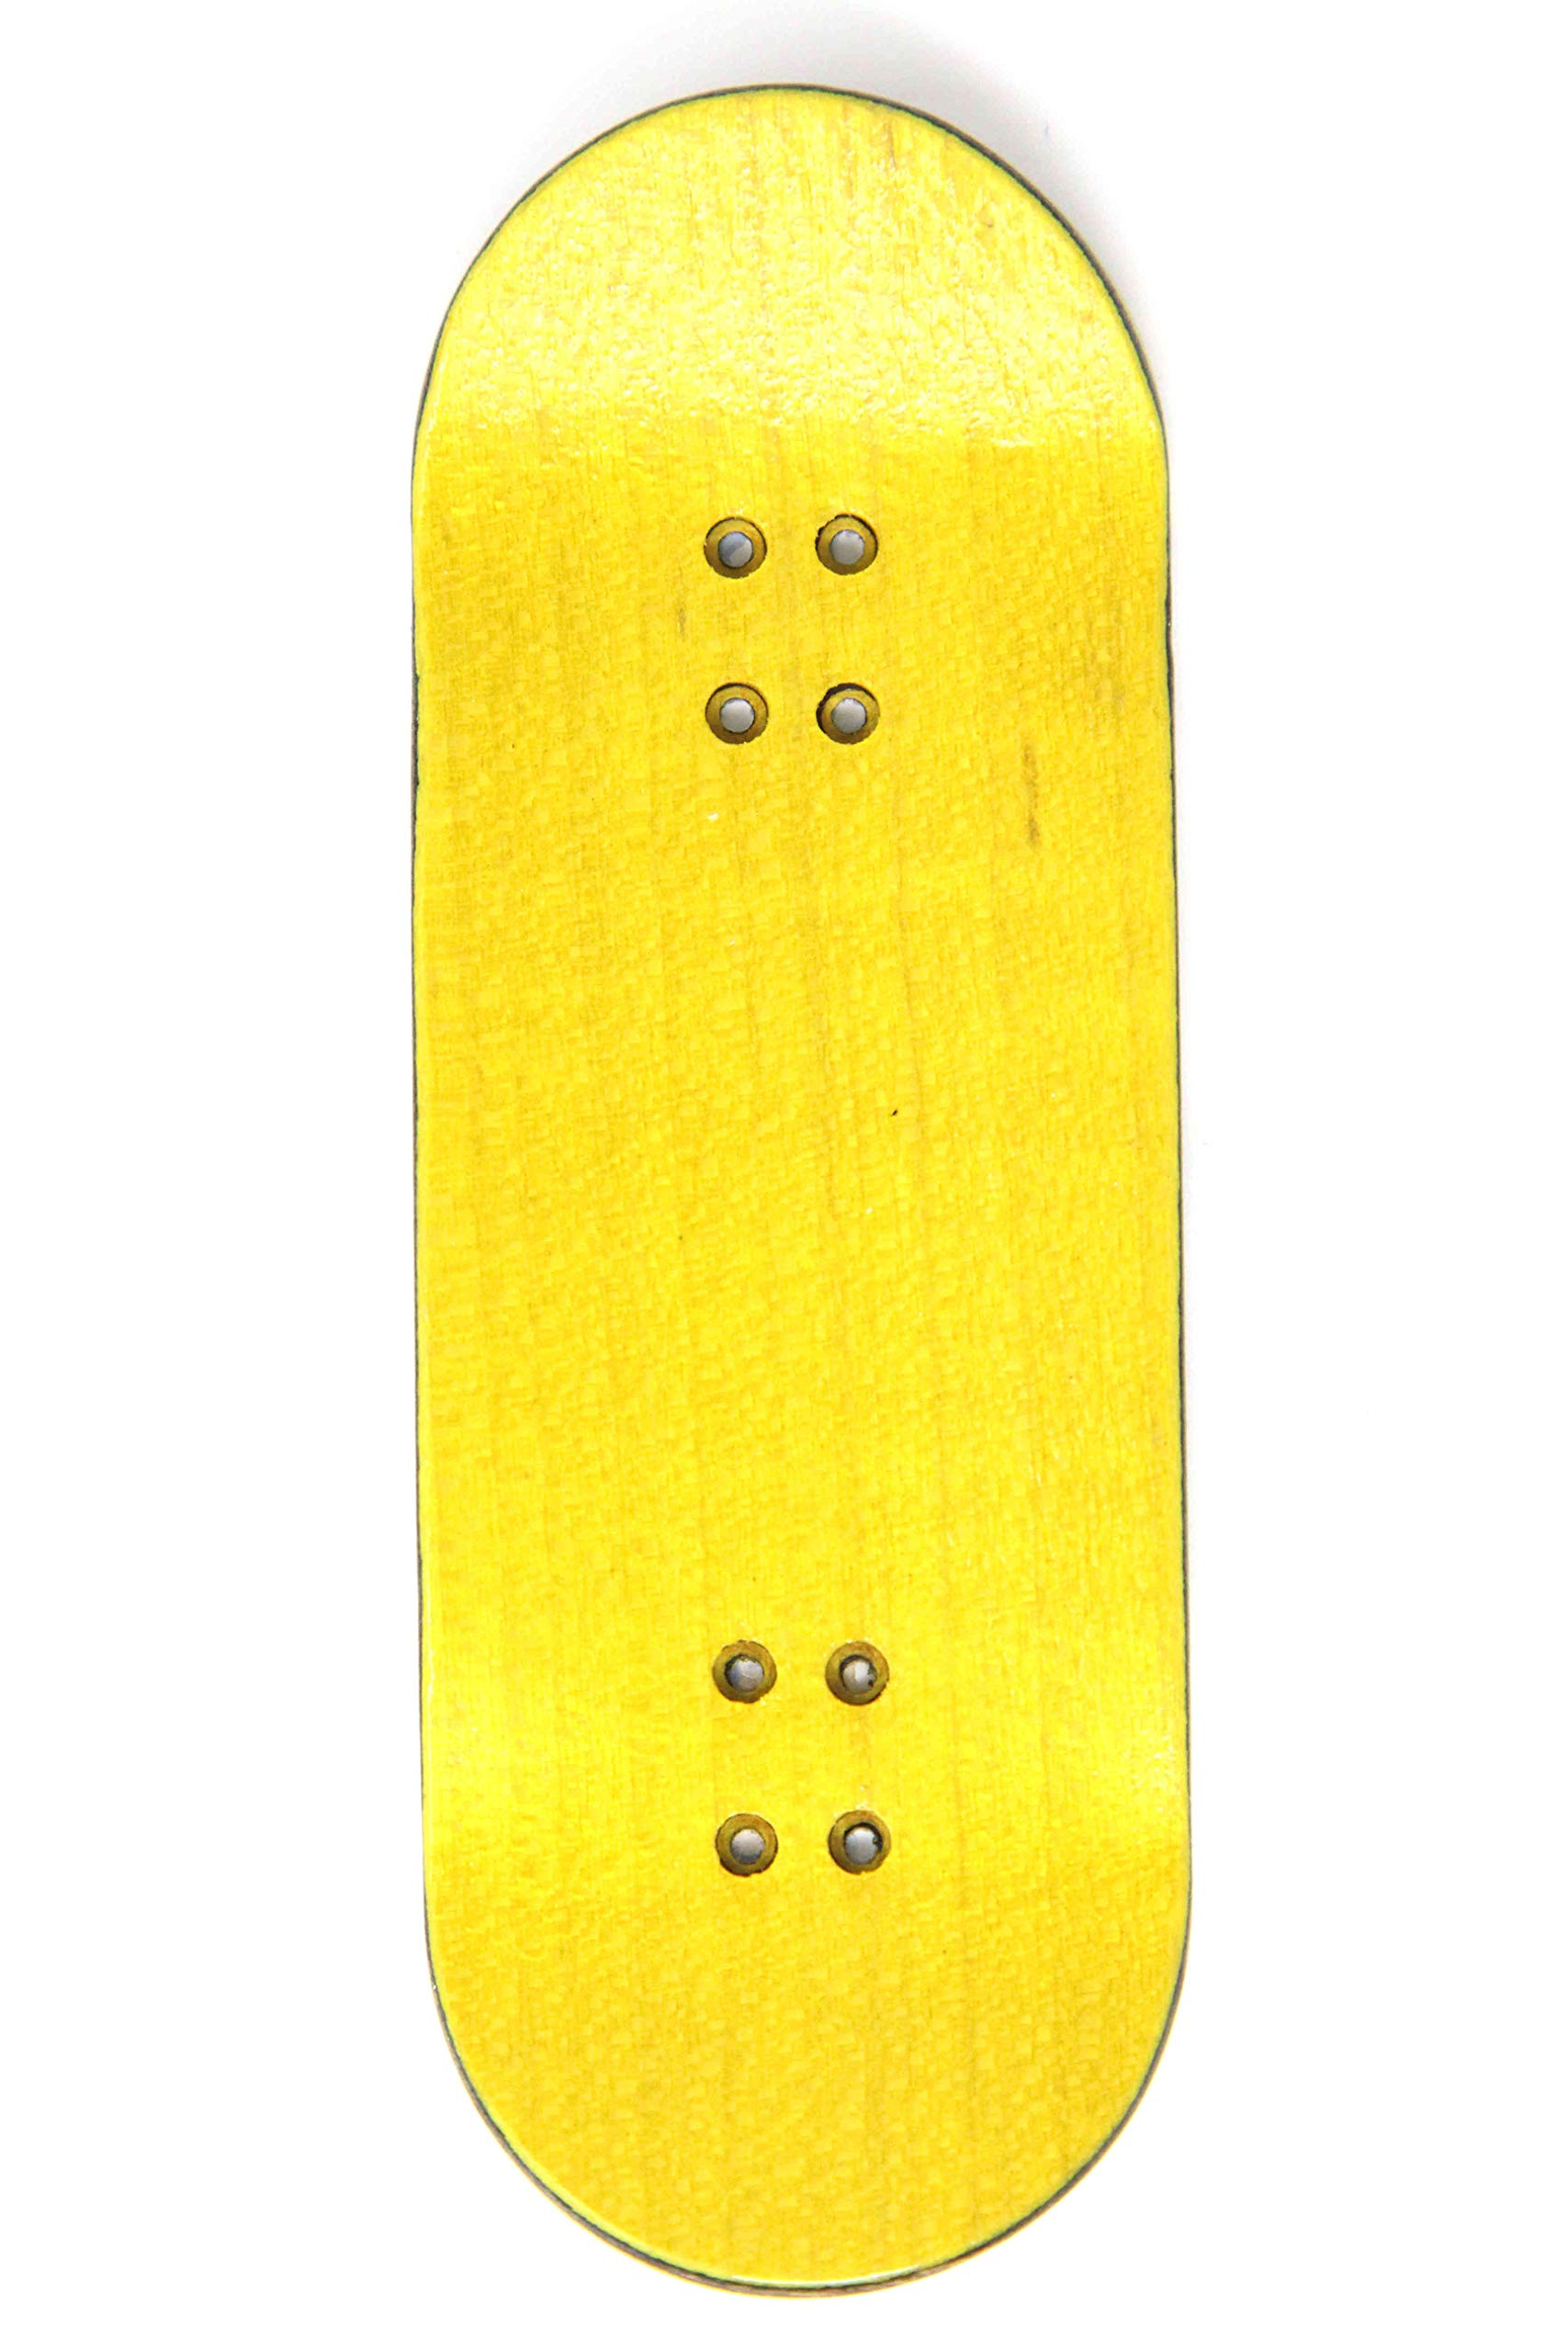 Skull Fingerboards Scream 34mm Complete Professional Wooden Fingerboard Mini Skateboard 5 PLY with CNC Bearing Wheels by Skull Fingerboards (Image #3)